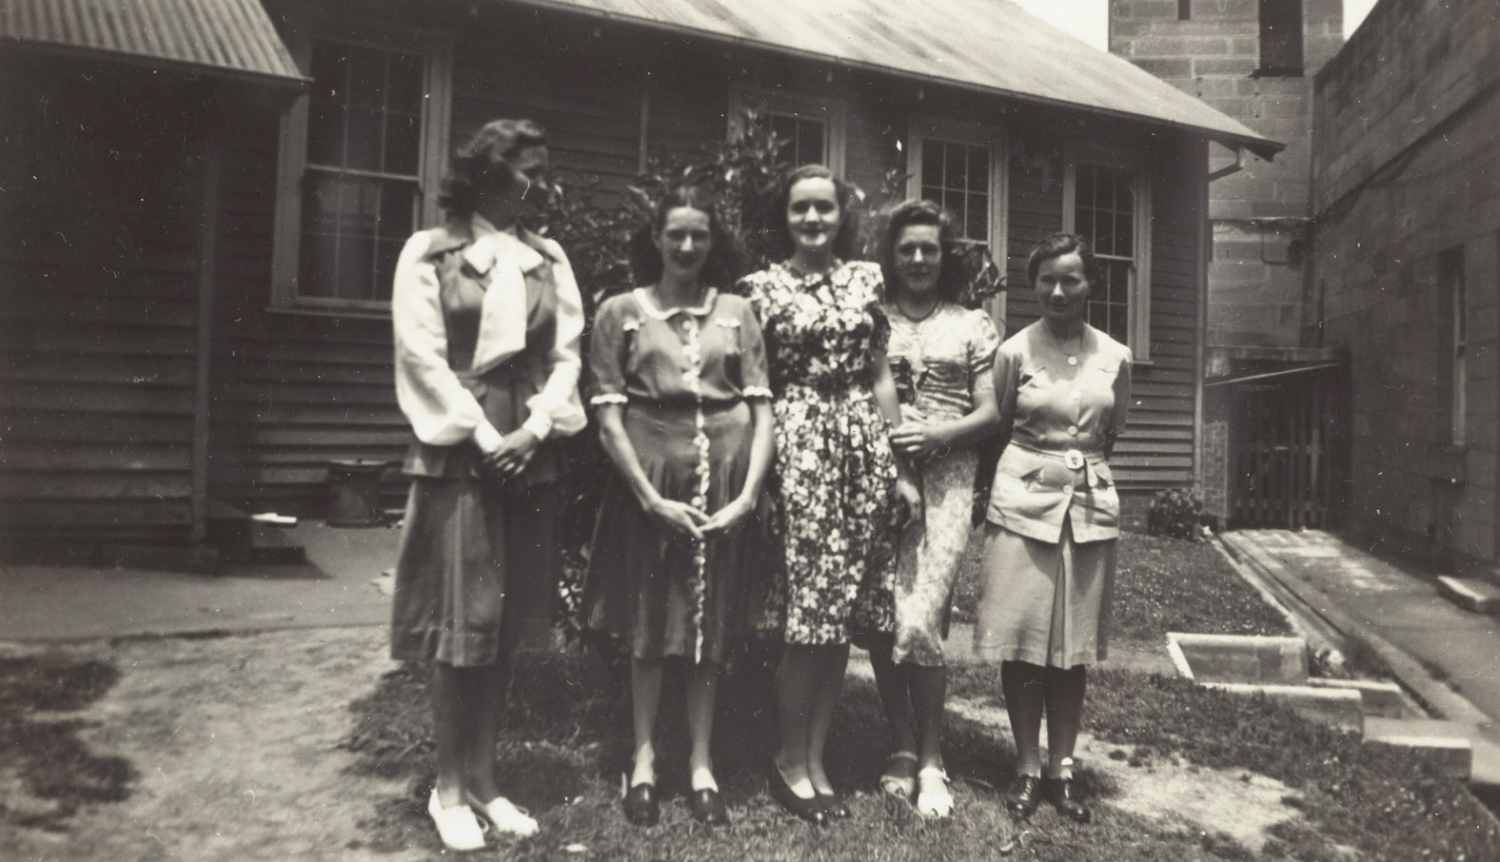 Students at East Sydney Technical College, mid 1940s